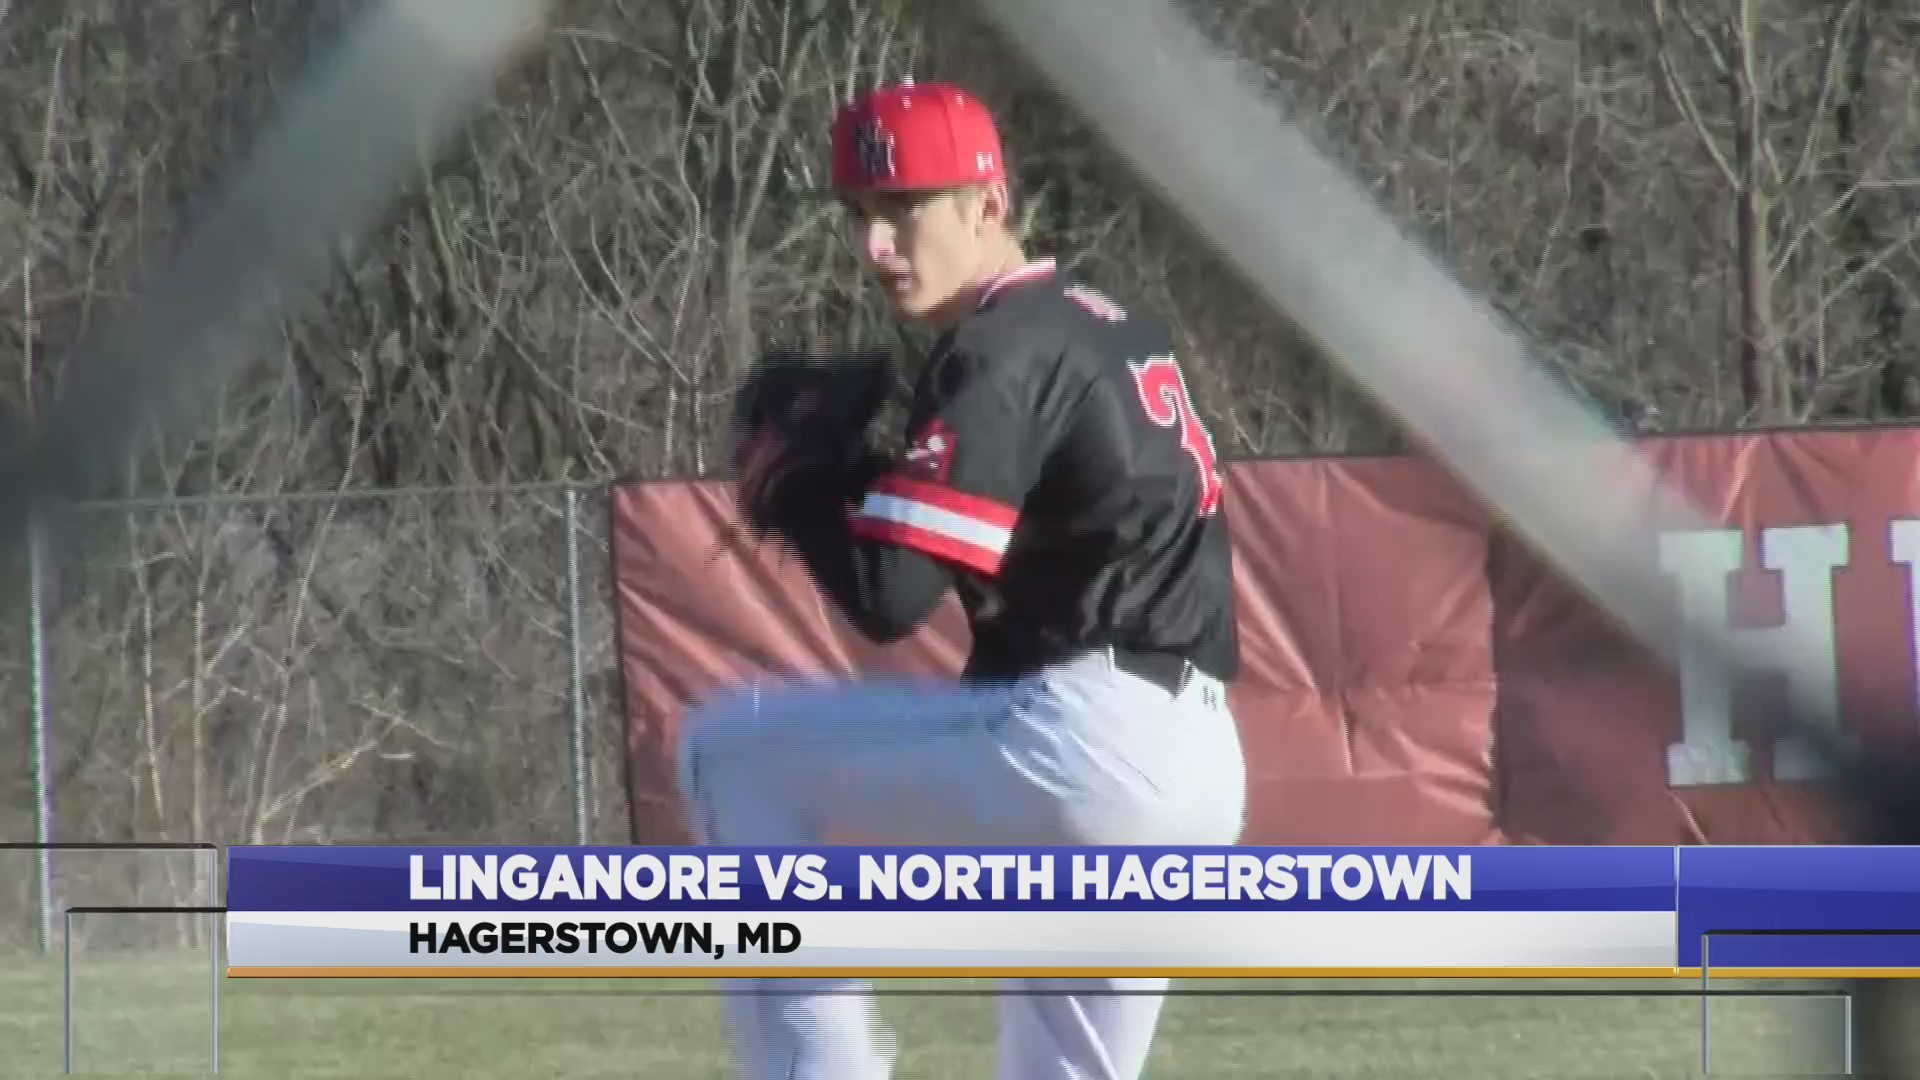 Linganore_vs__North_Hagerstown_0_20190328030307